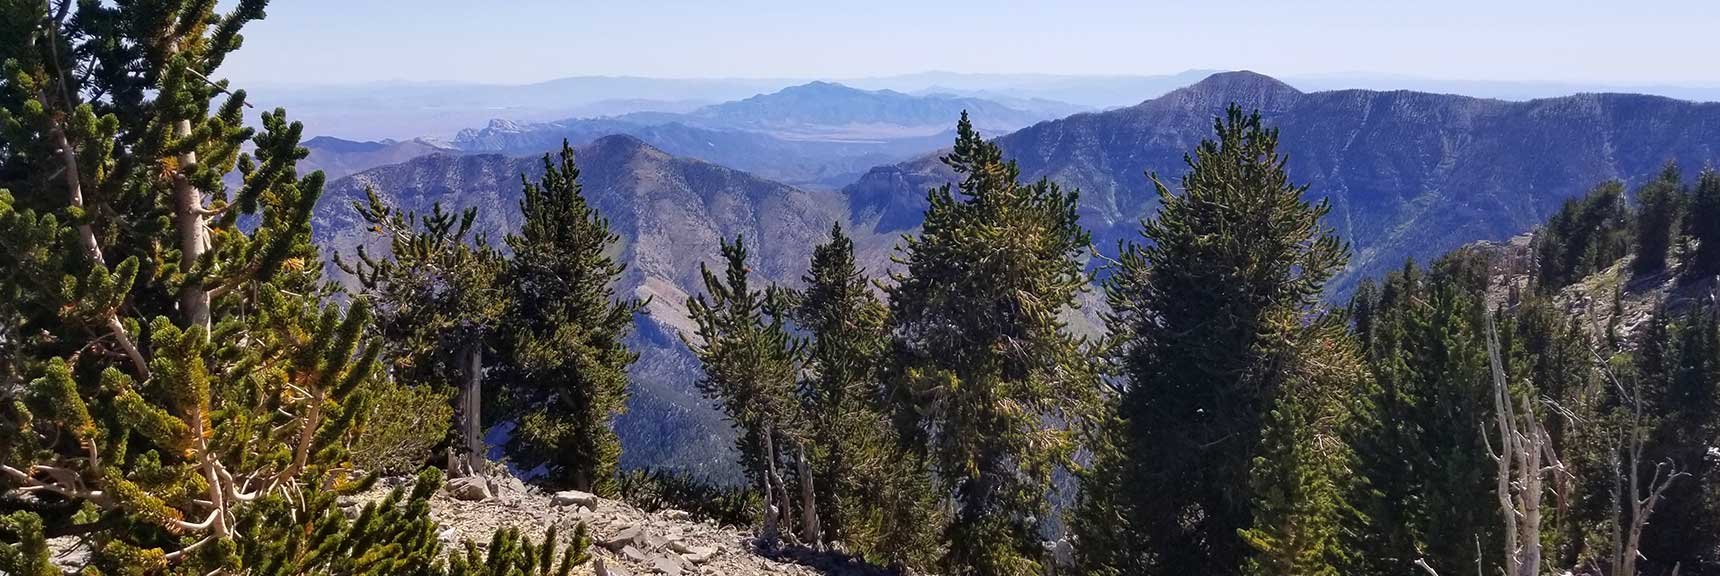 View Toward Griffith Peak and Harris Mt from Mummy Mt Summit, Nevada